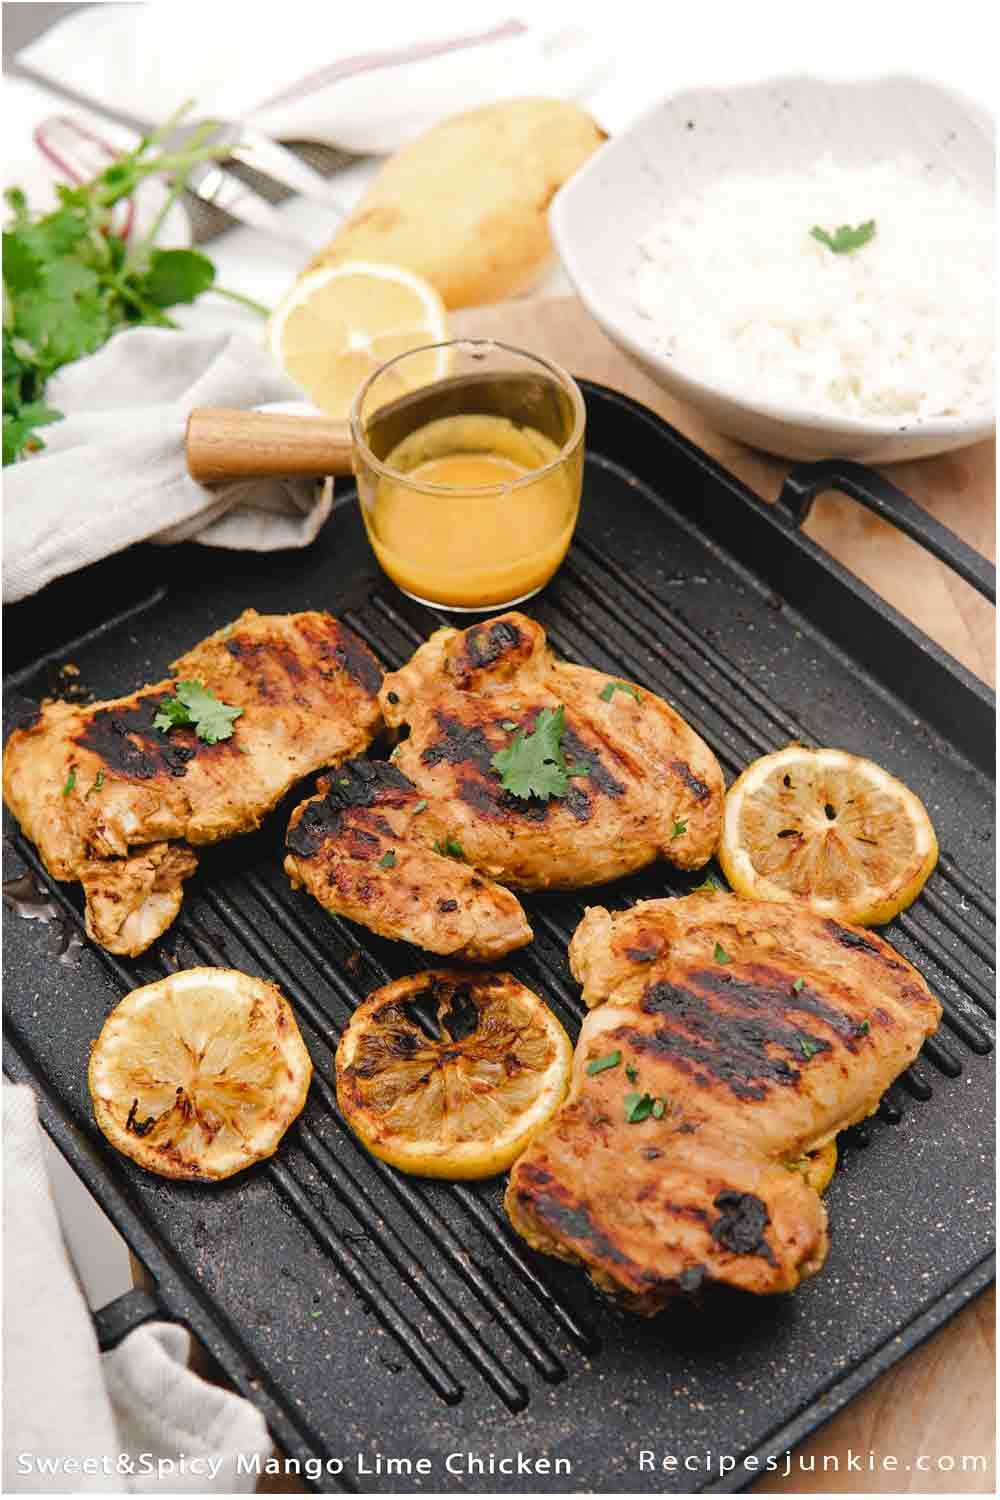 Sweet and Spicy Mango Lime Chicken